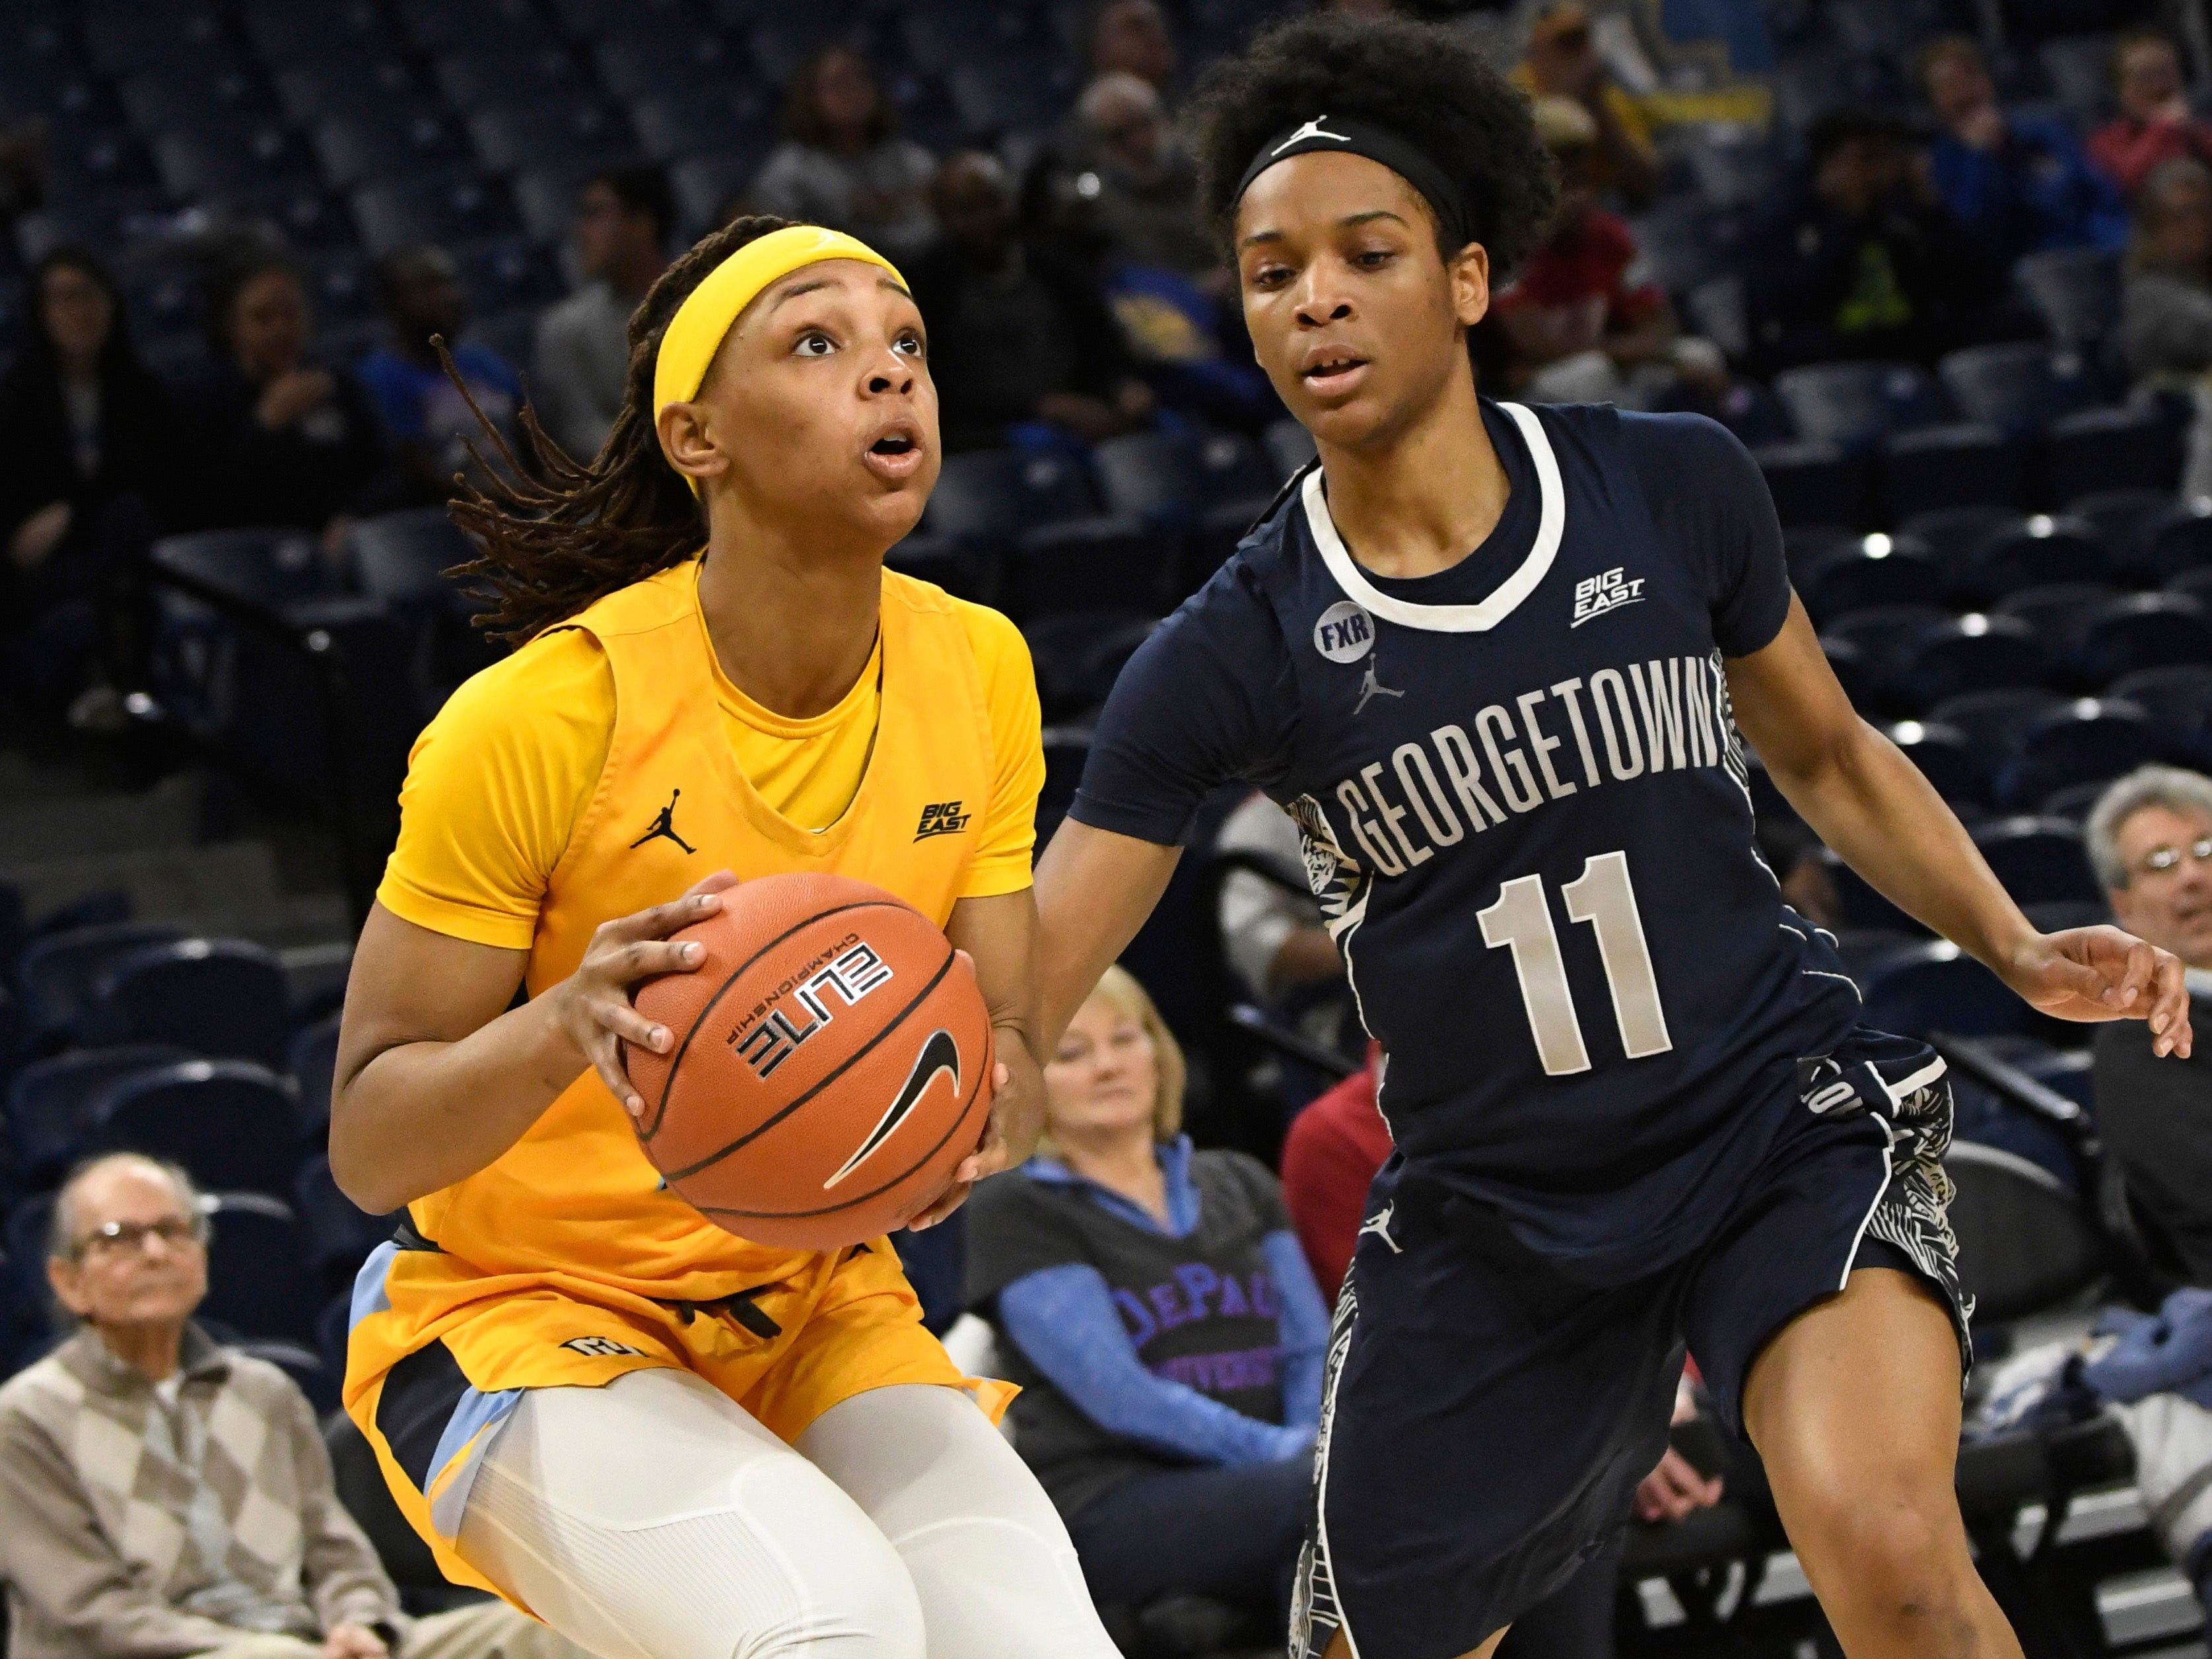 Marquette guard Allazia Blockton (11) is defended by Georgetown guard Dionna White during the first half.